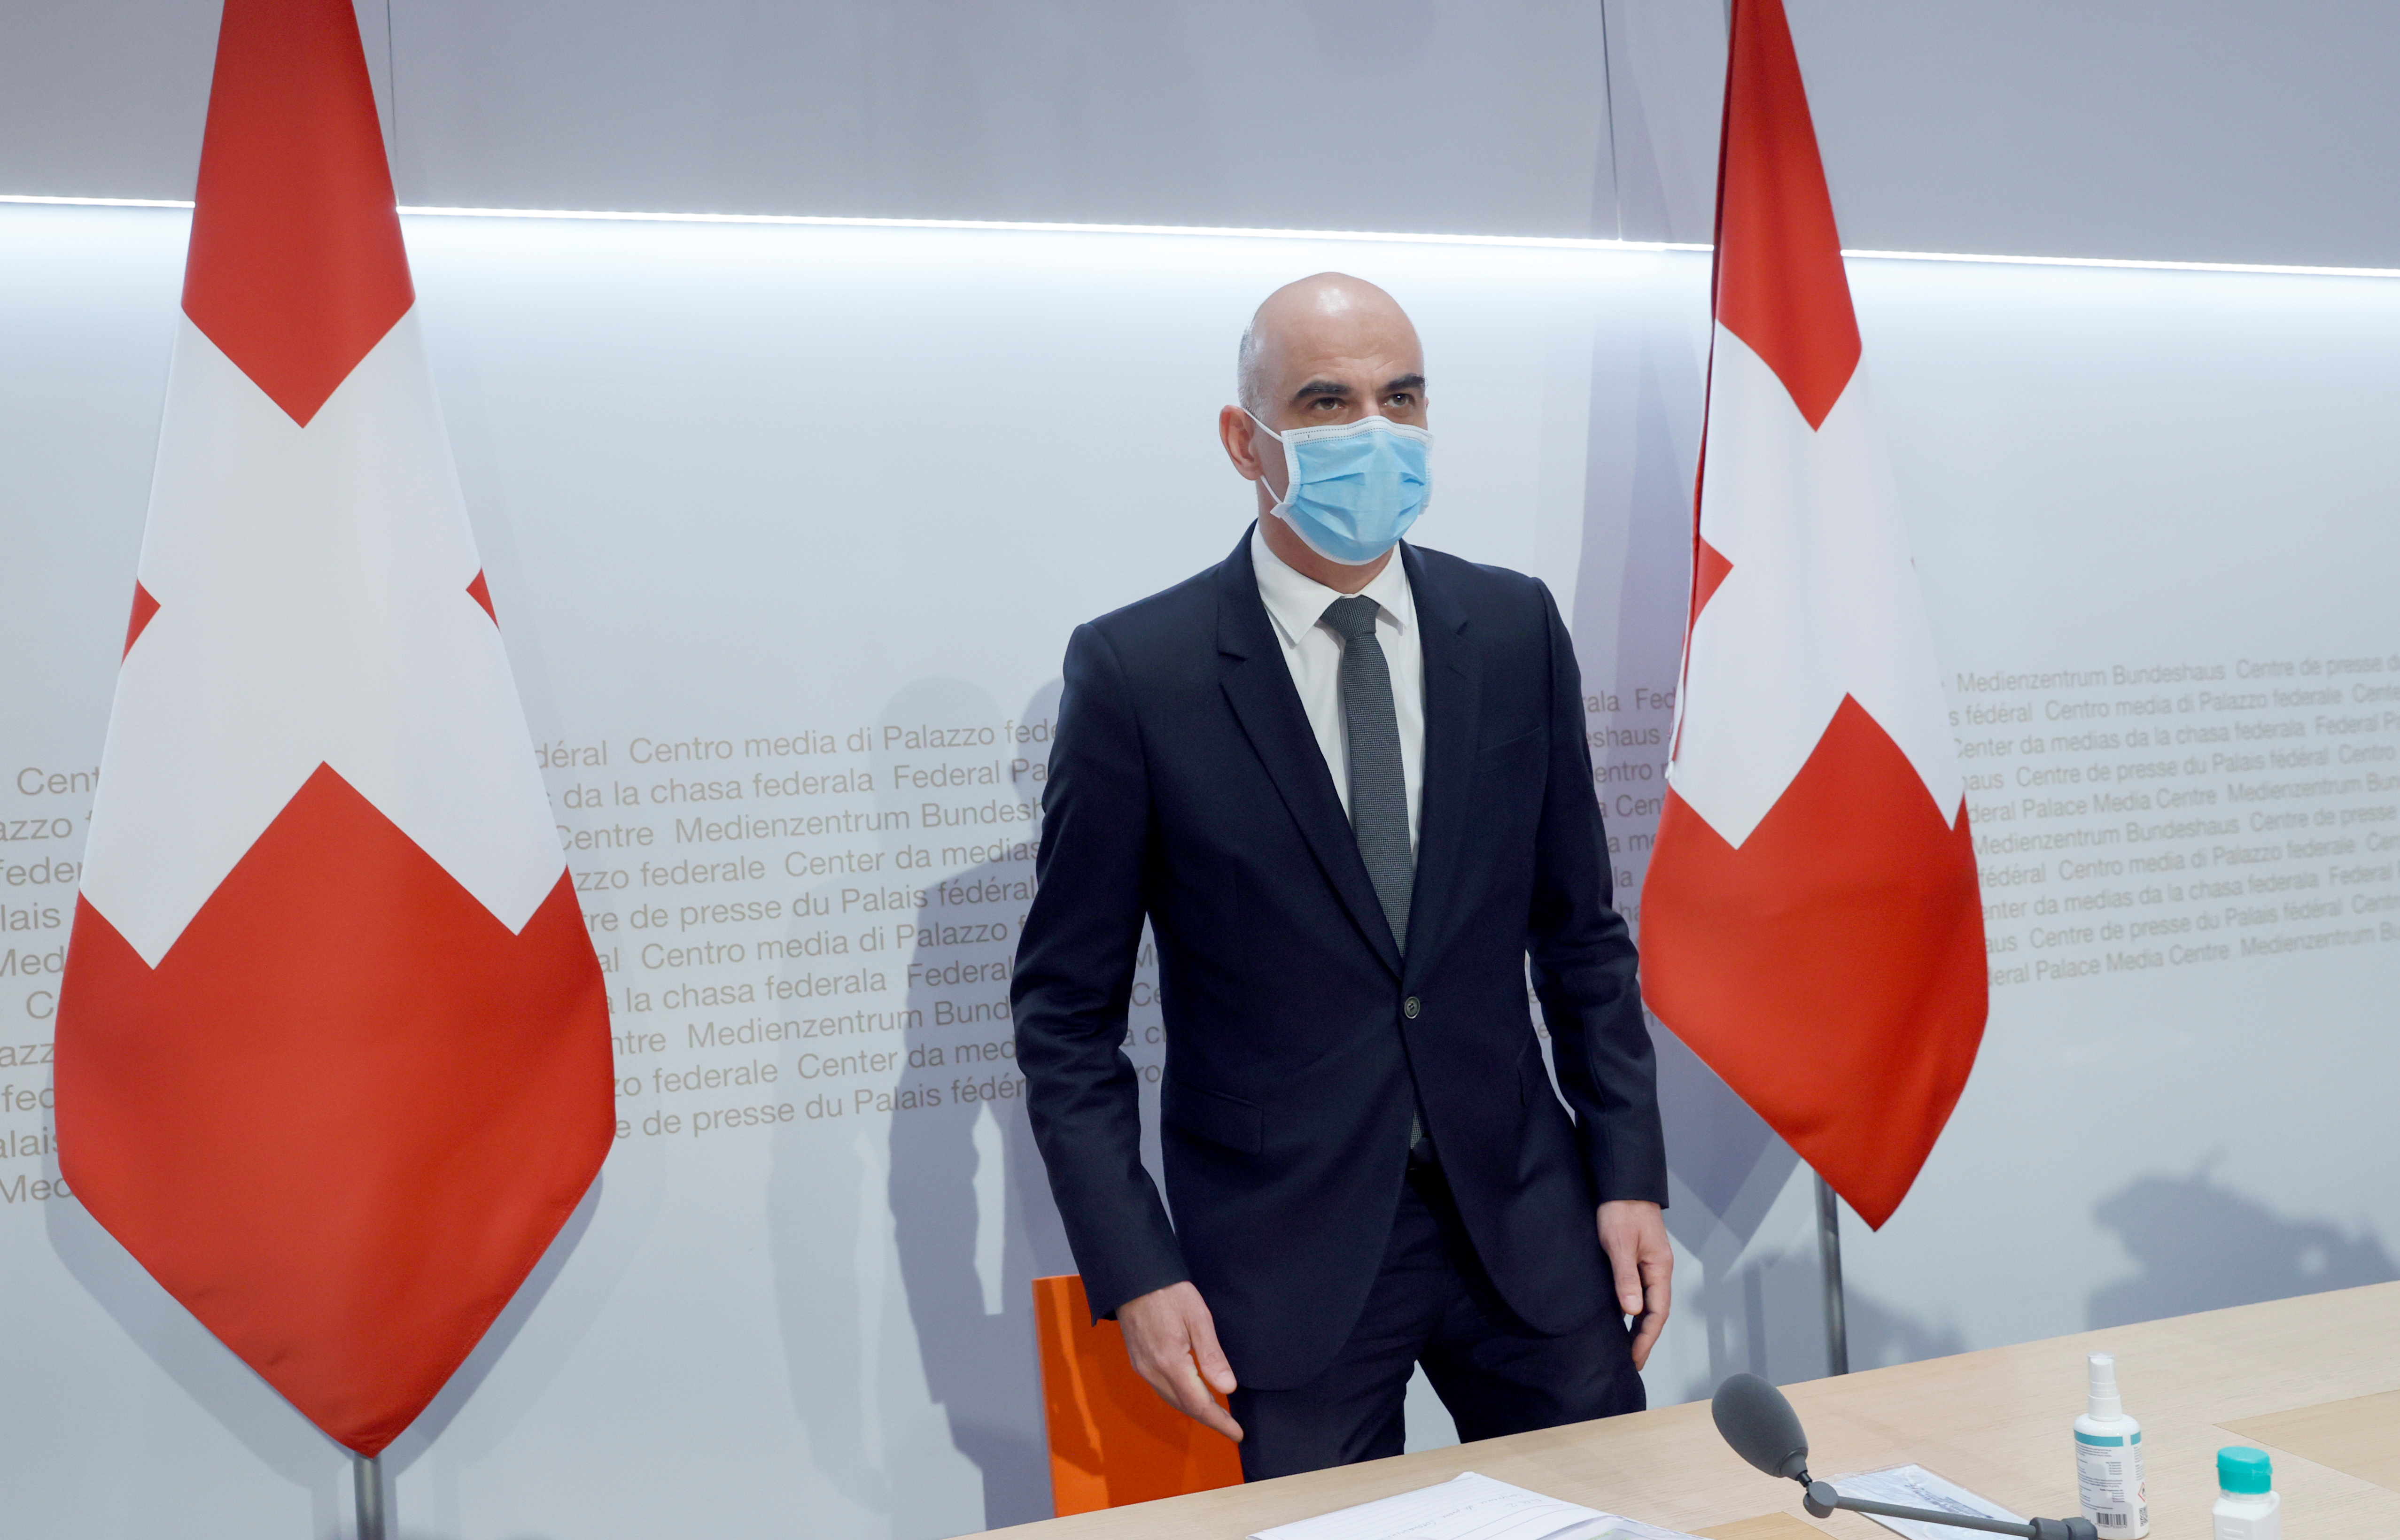 Swiss Interior Minister Alain Berset attends a news conference on the outbreak of the coronavirus disease (COVID-19) in Bern, Switzerland, January 6, 2021. REUTERS/Denis Balibouse